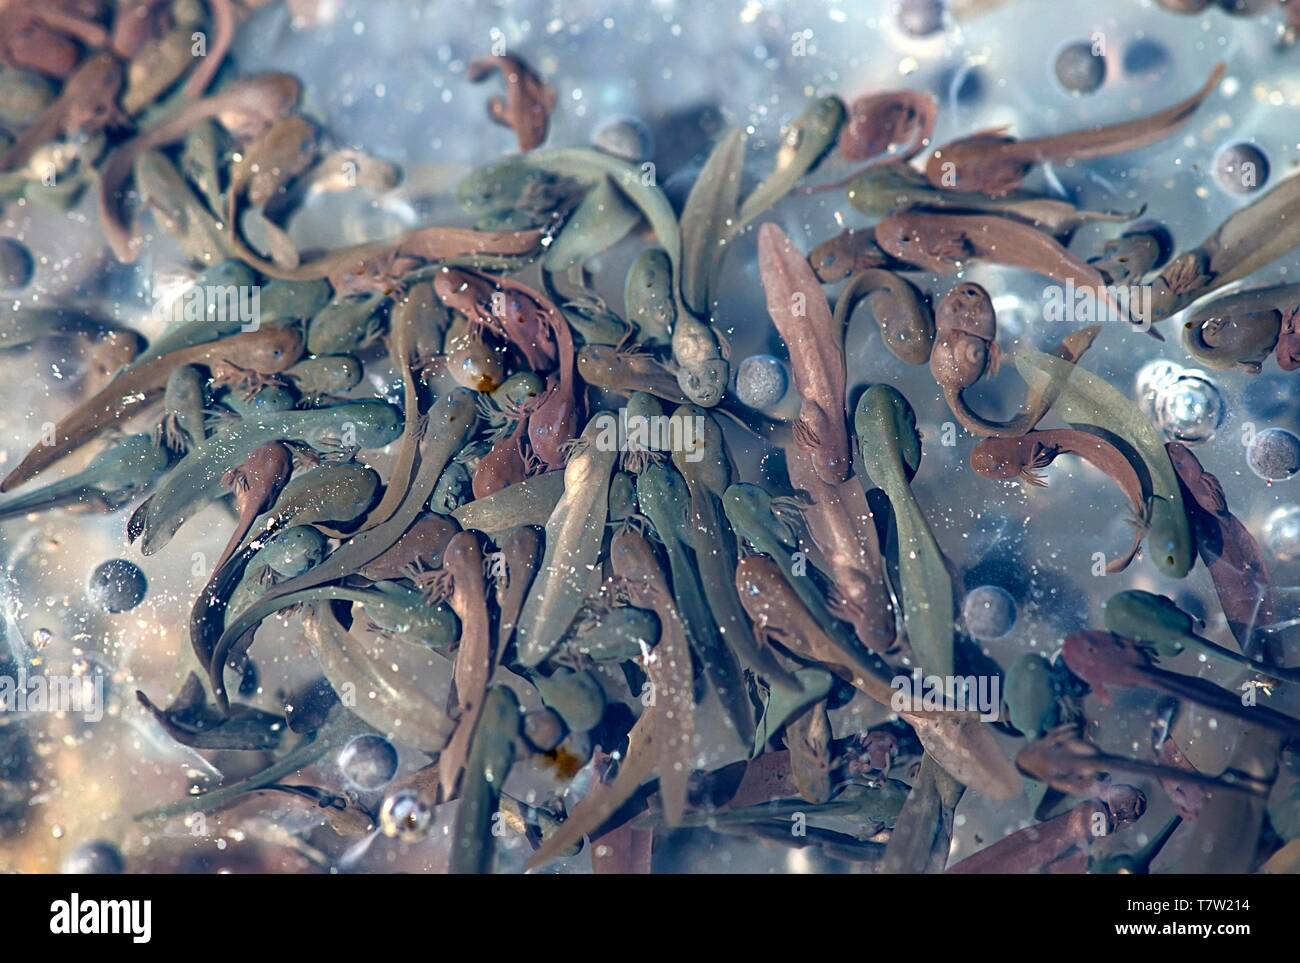 Common frog (Rana temporaria), tadpoles, Switzerland - Stock Image